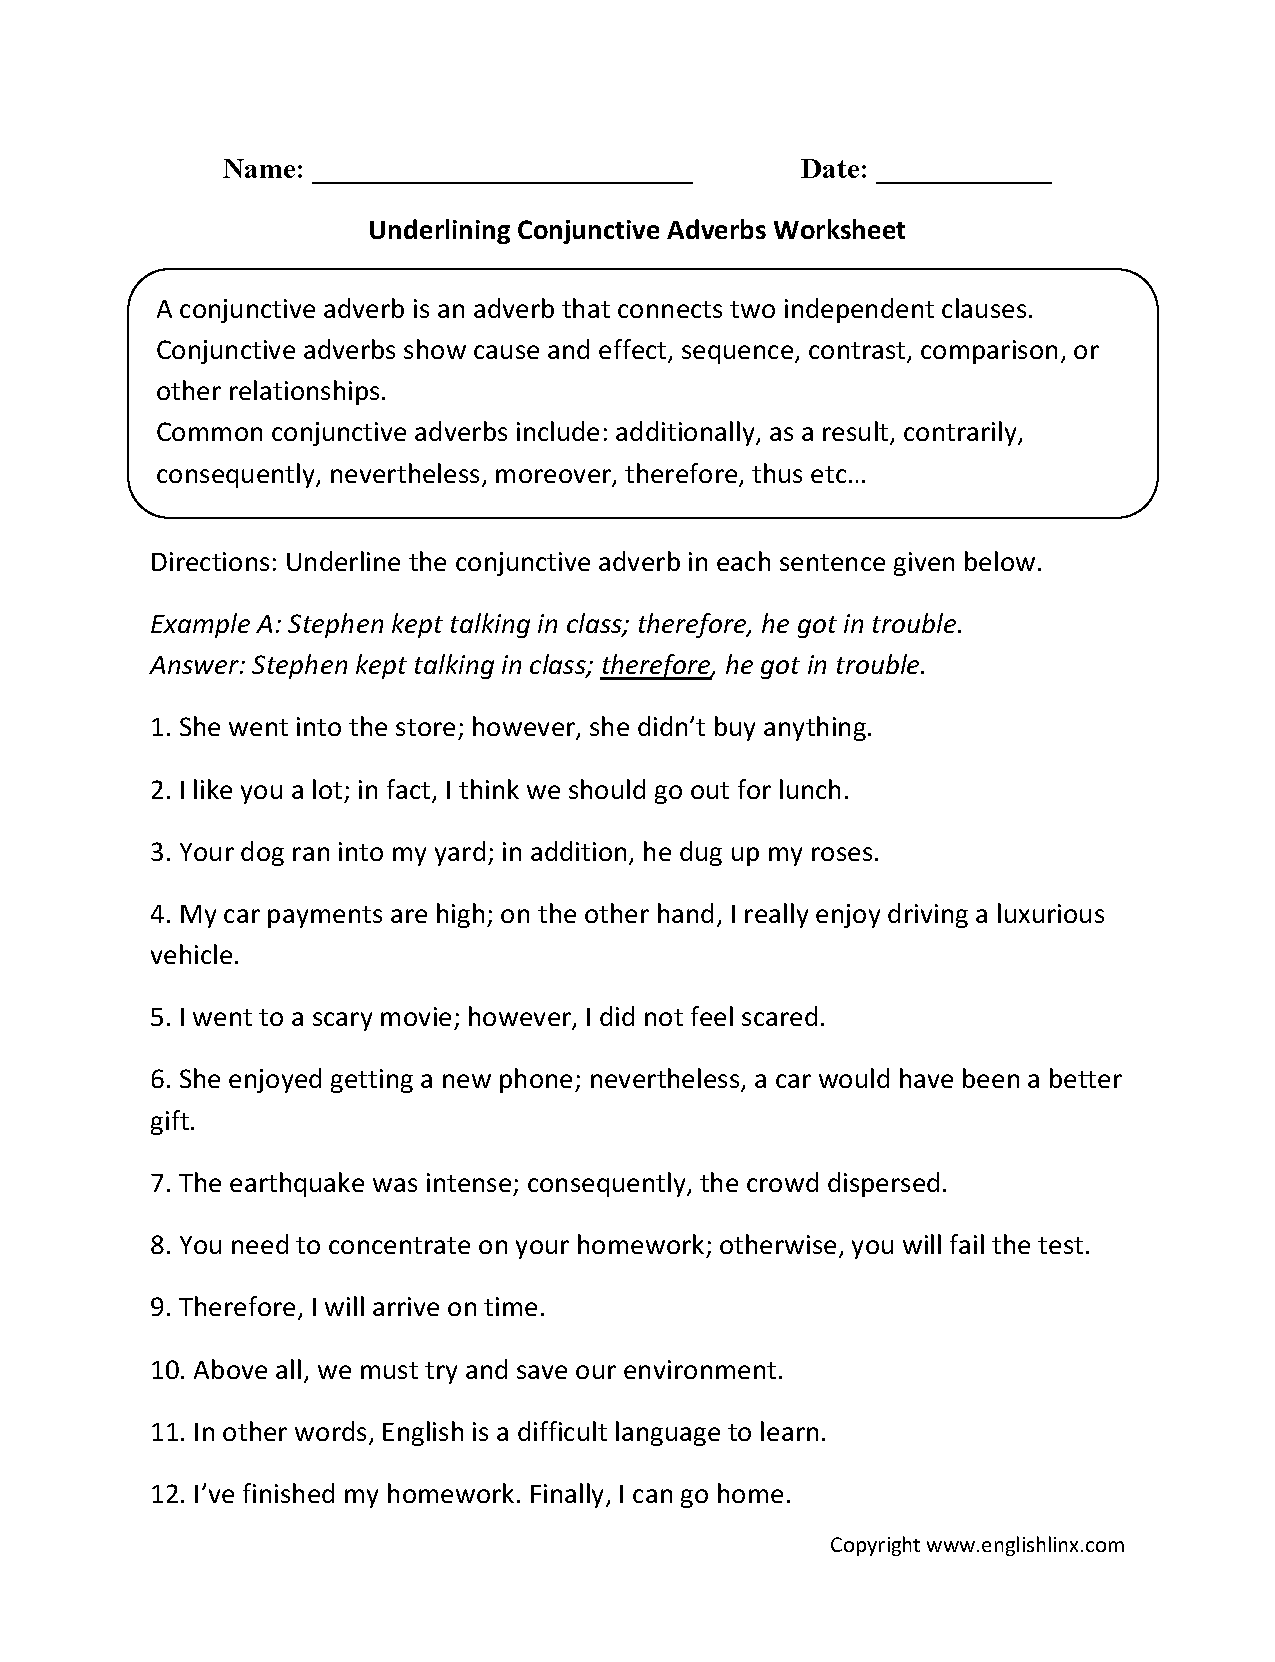 Weirdmailus  Seductive Englishlinxcom  Conjunctions Worksheets With Inspiring Worksheet With Astounding Number Dot To Dot Worksheets Also Verb Noun Worksheet In Addition Printable Martin Luther King Jr Worksheets And Plant Part Worksheet As Well As Printable Reading Worksheets For Rd Grade Additionally High School Inference Worksheets From Englishlinxcom With Weirdmailus  Inspiring Englishlinxcom  Conjunctions Worksheets With Astounding Worksheet And Seductive Number Dot To Dot Worksheets Also Verb Noun Worksheet In Addition Printable Martin Luther King Jr Worksheets From Englishlinxcom